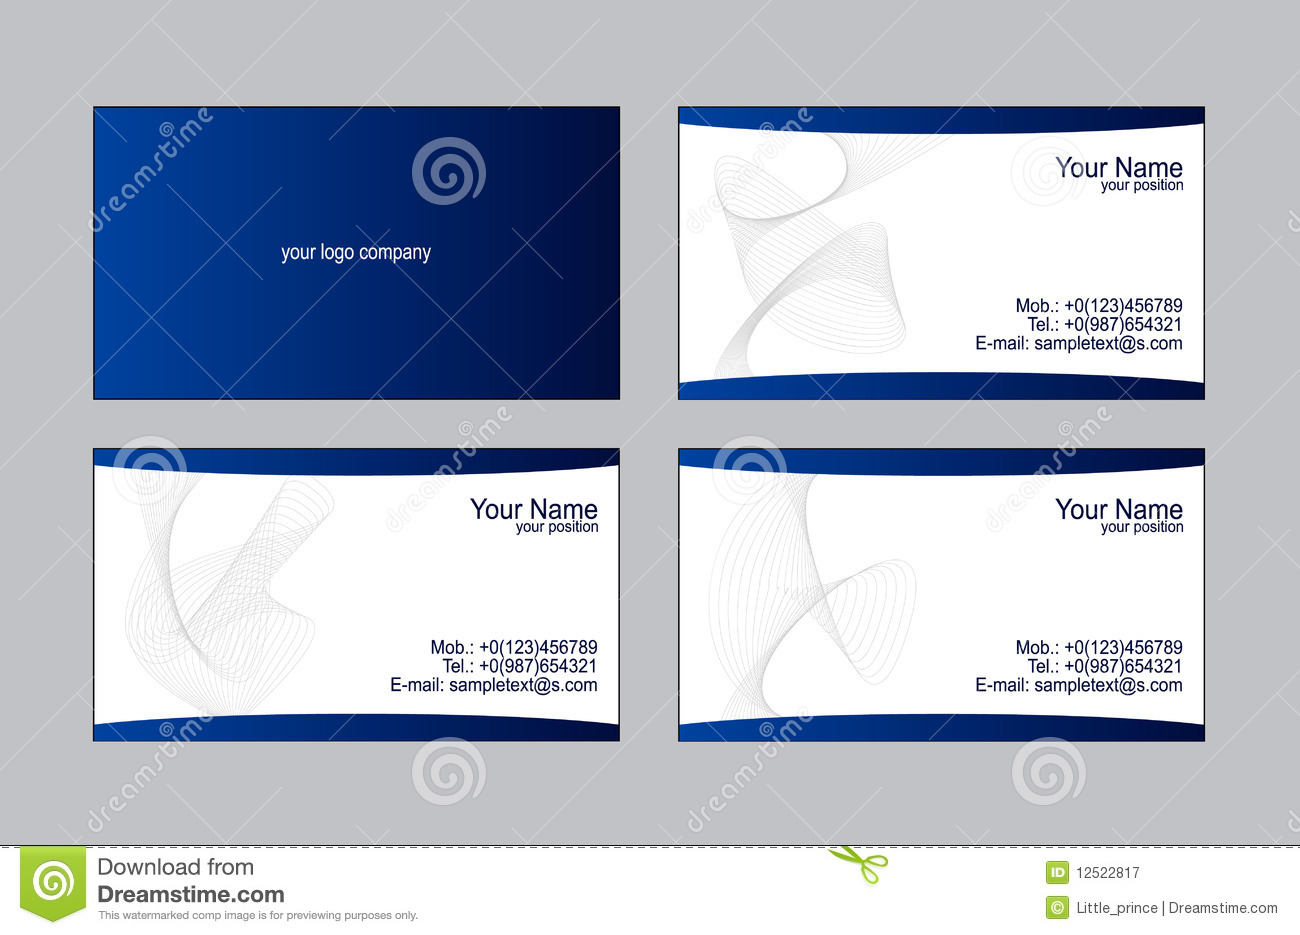 Email Business Card Templates